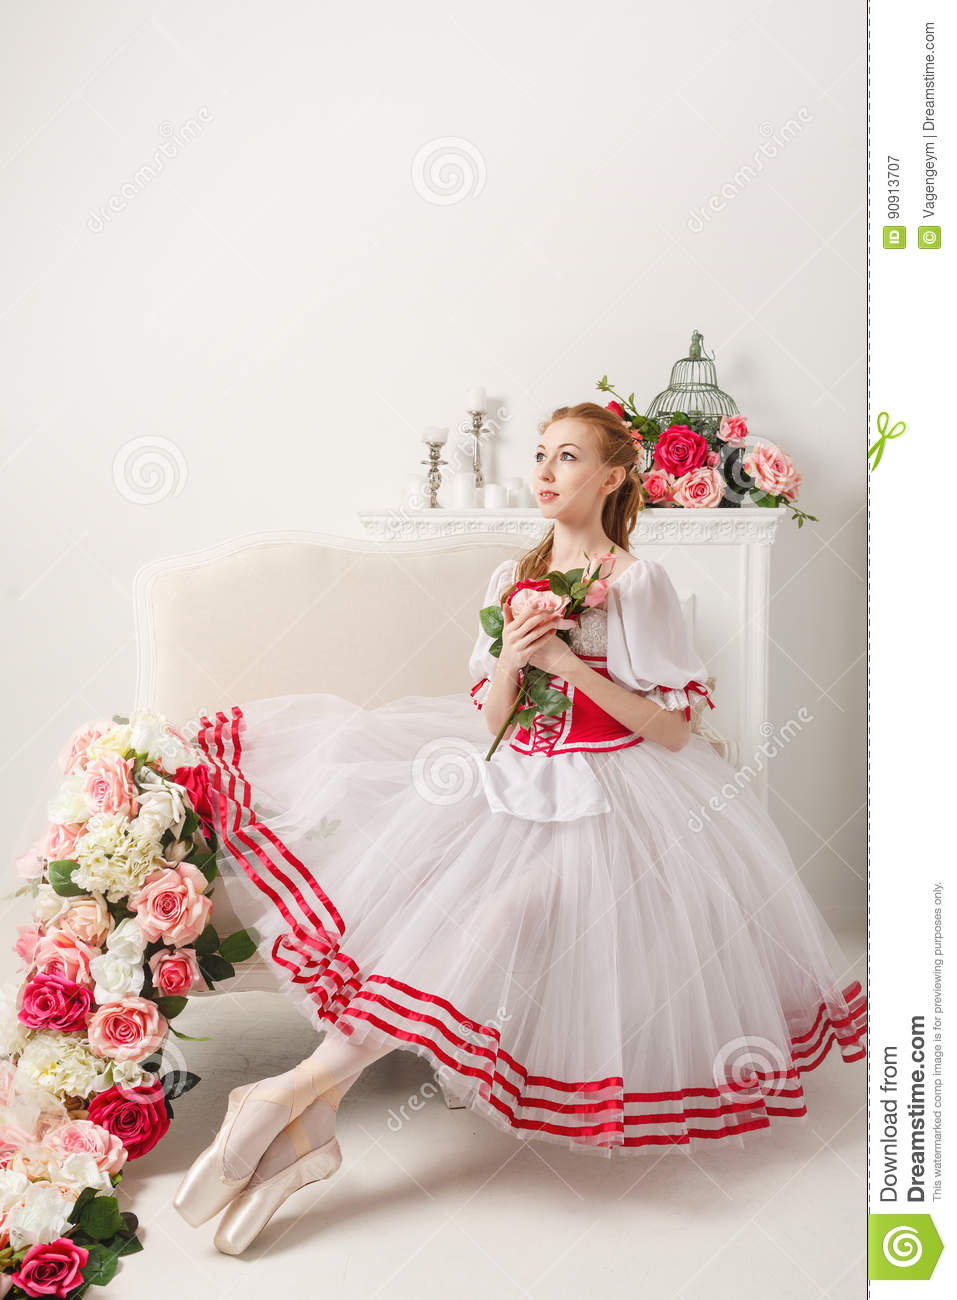 Pretty Ballerina Holding Flowers Stock Image Image Of Contemporary